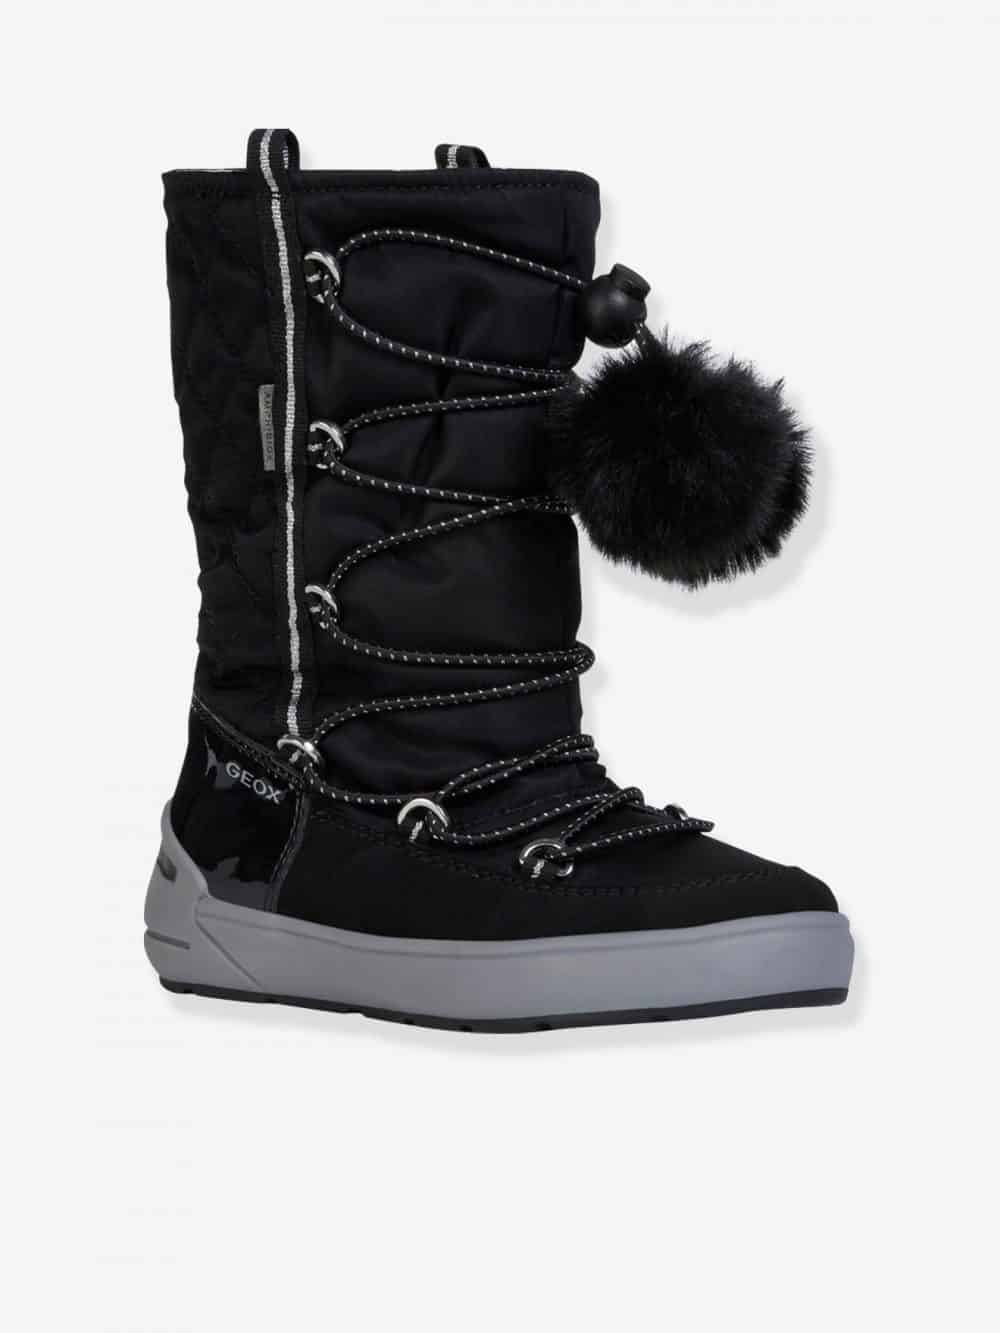 J Sleigh Girl B Abx Boots for Girls, by GEOX® black dark solid